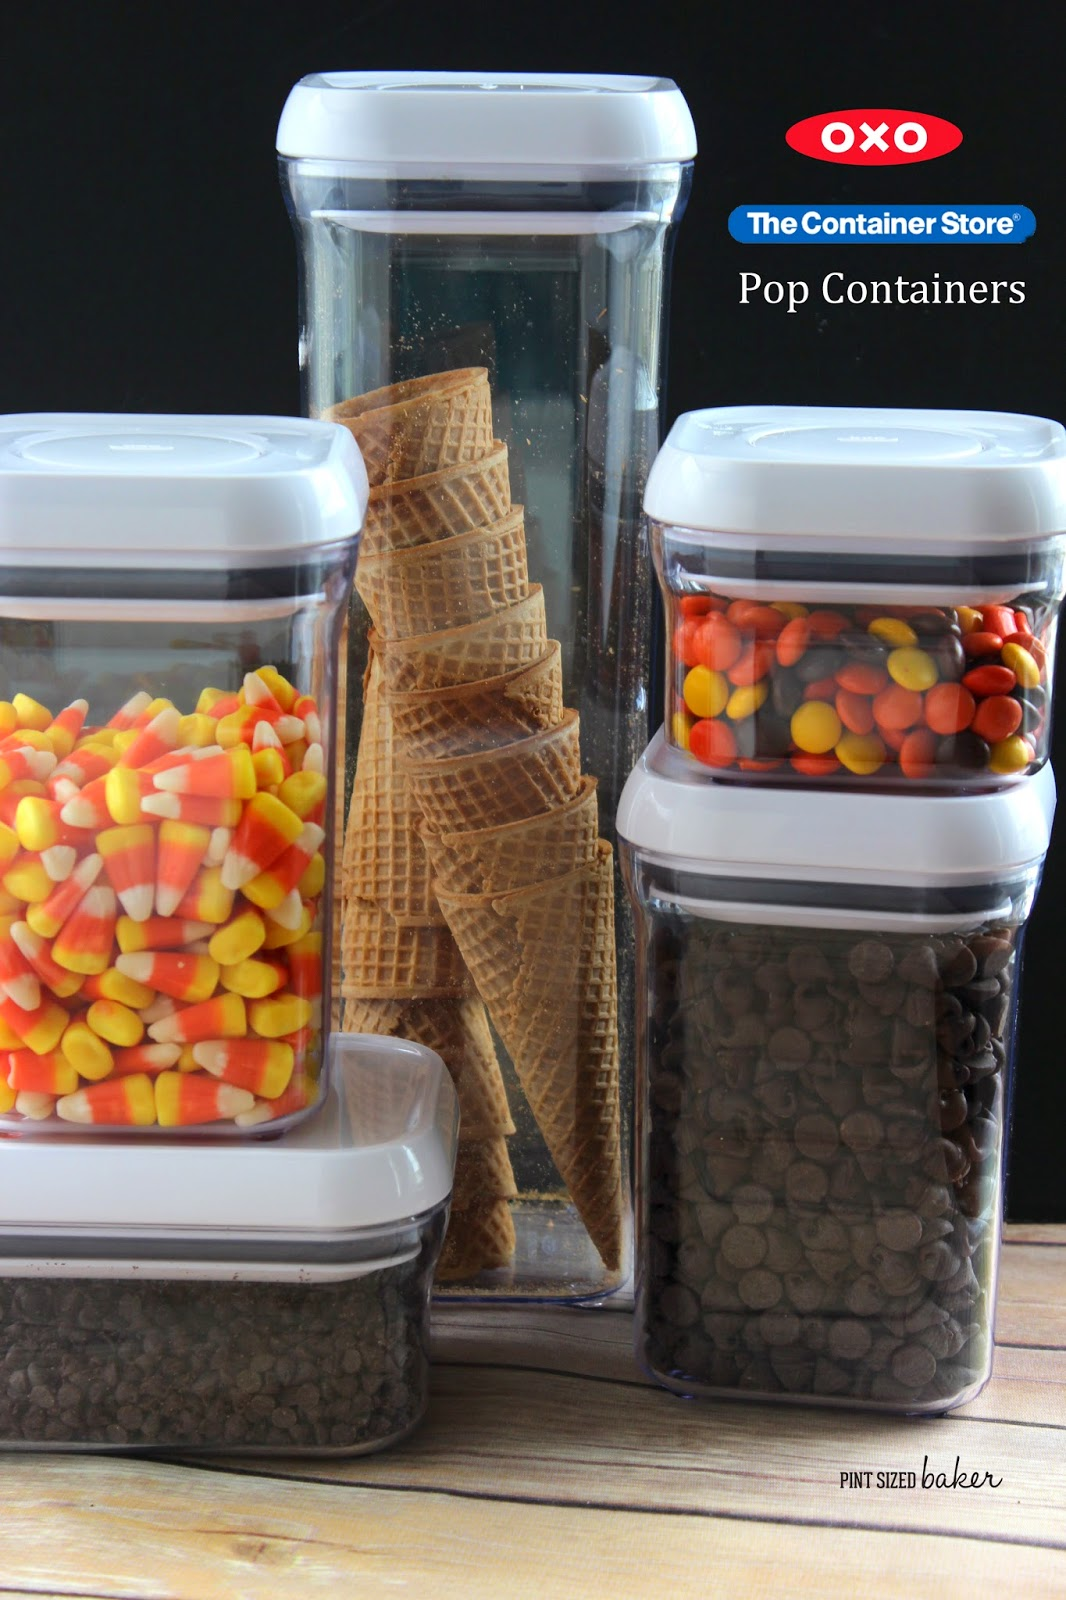 OXO Pop Top Containers